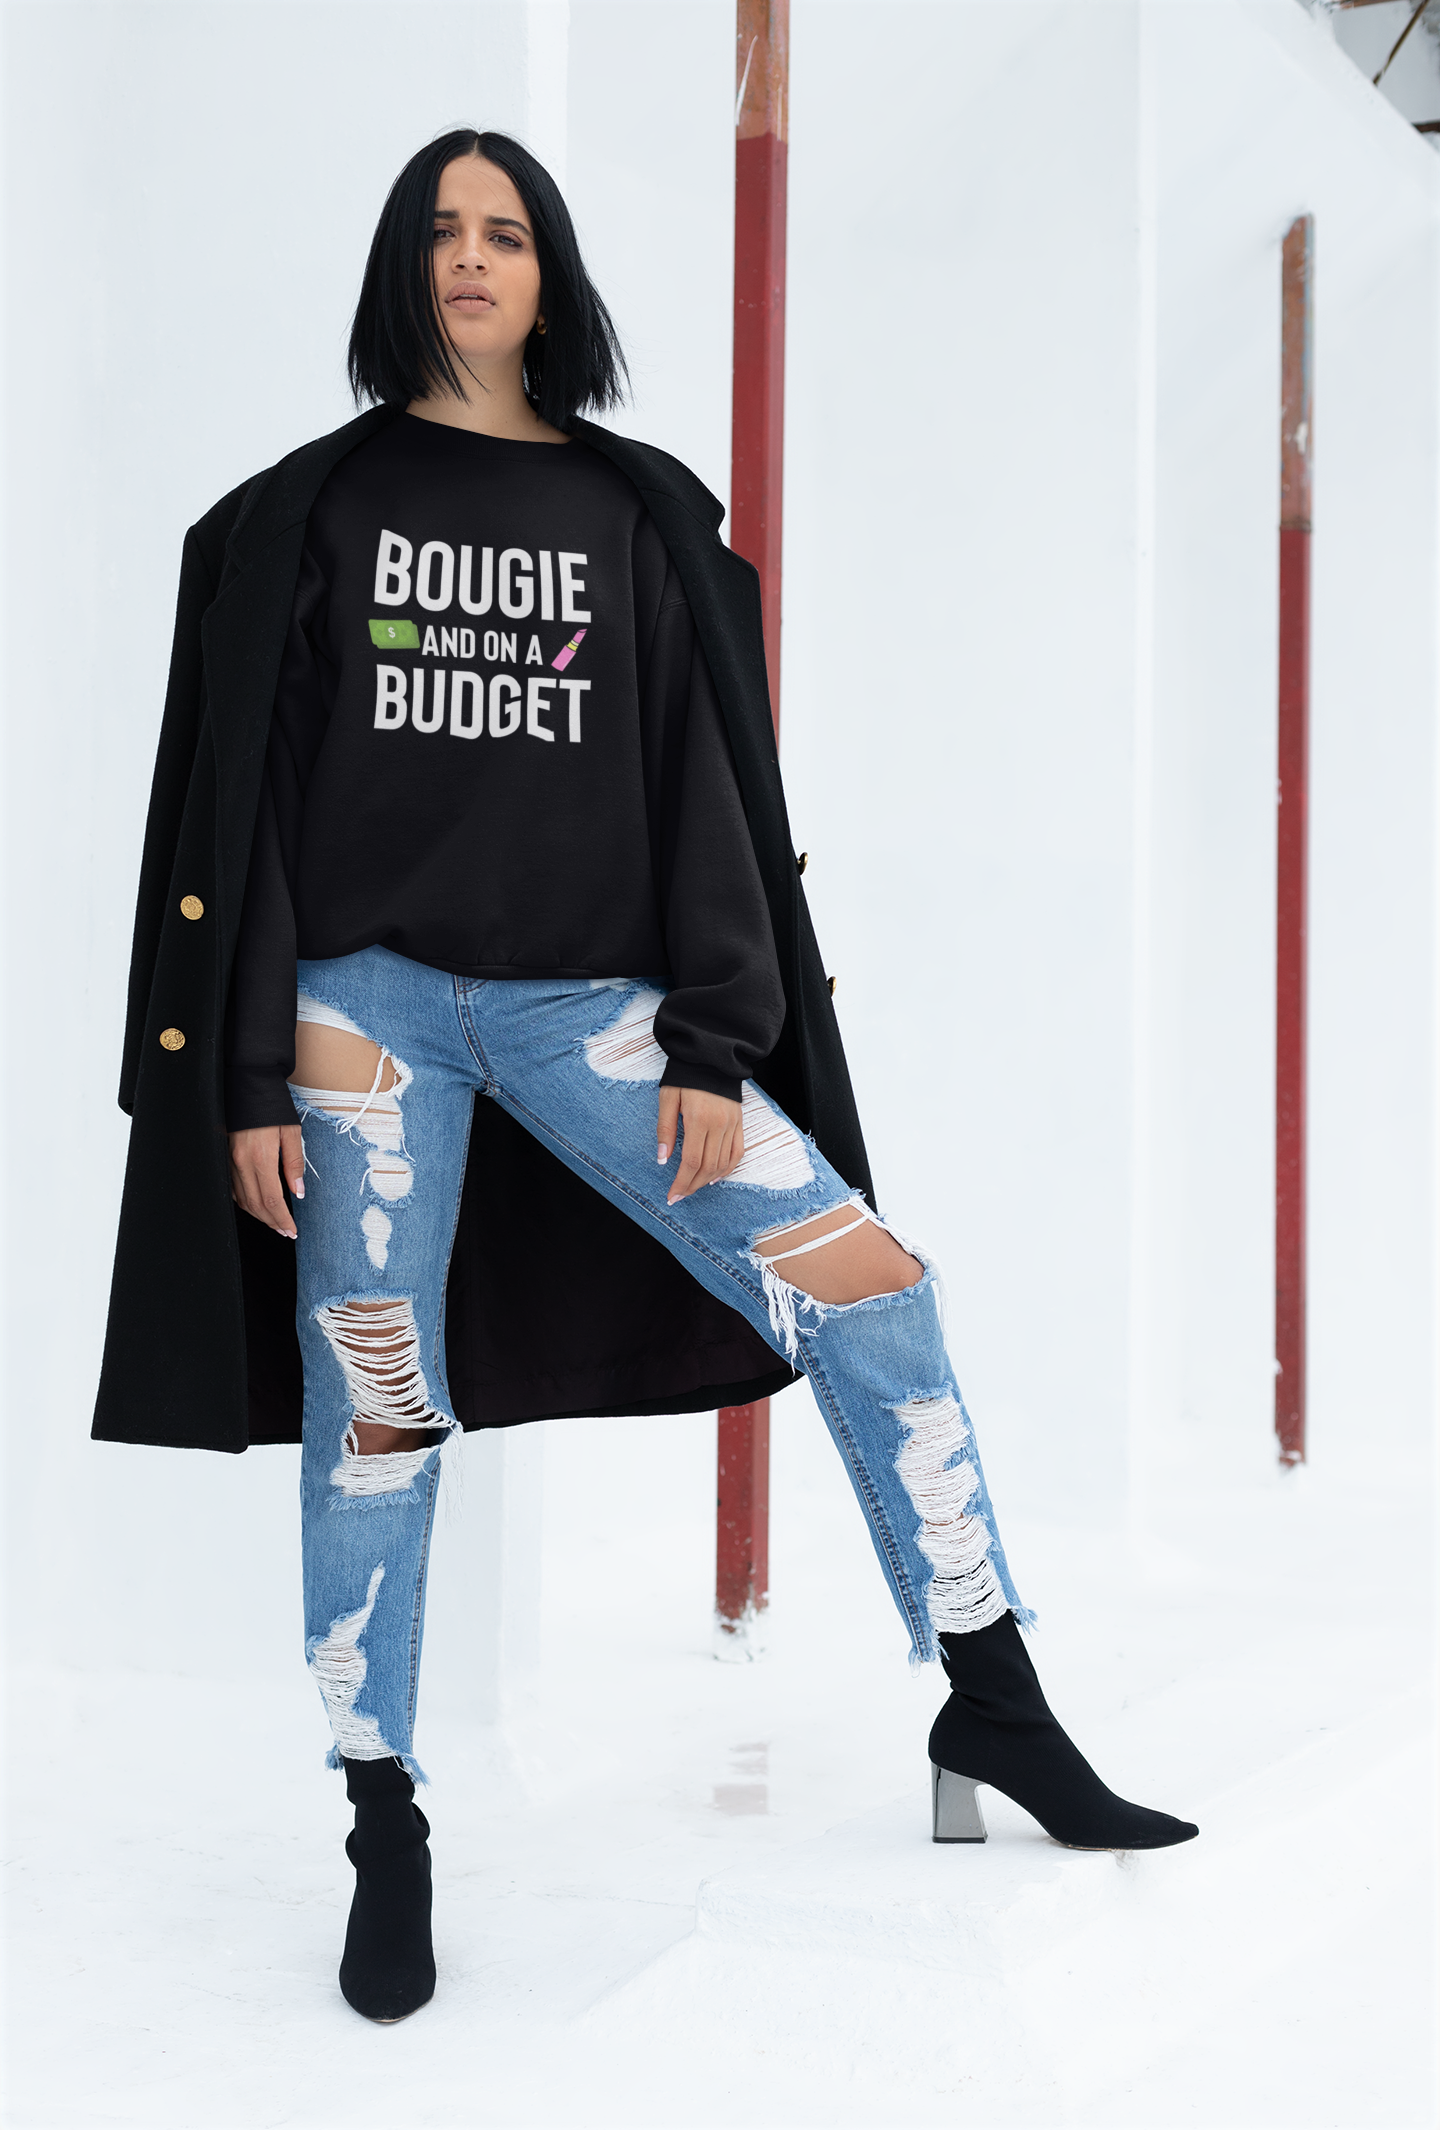 Image of BOUGIE BUDGET SWEATSHIRT